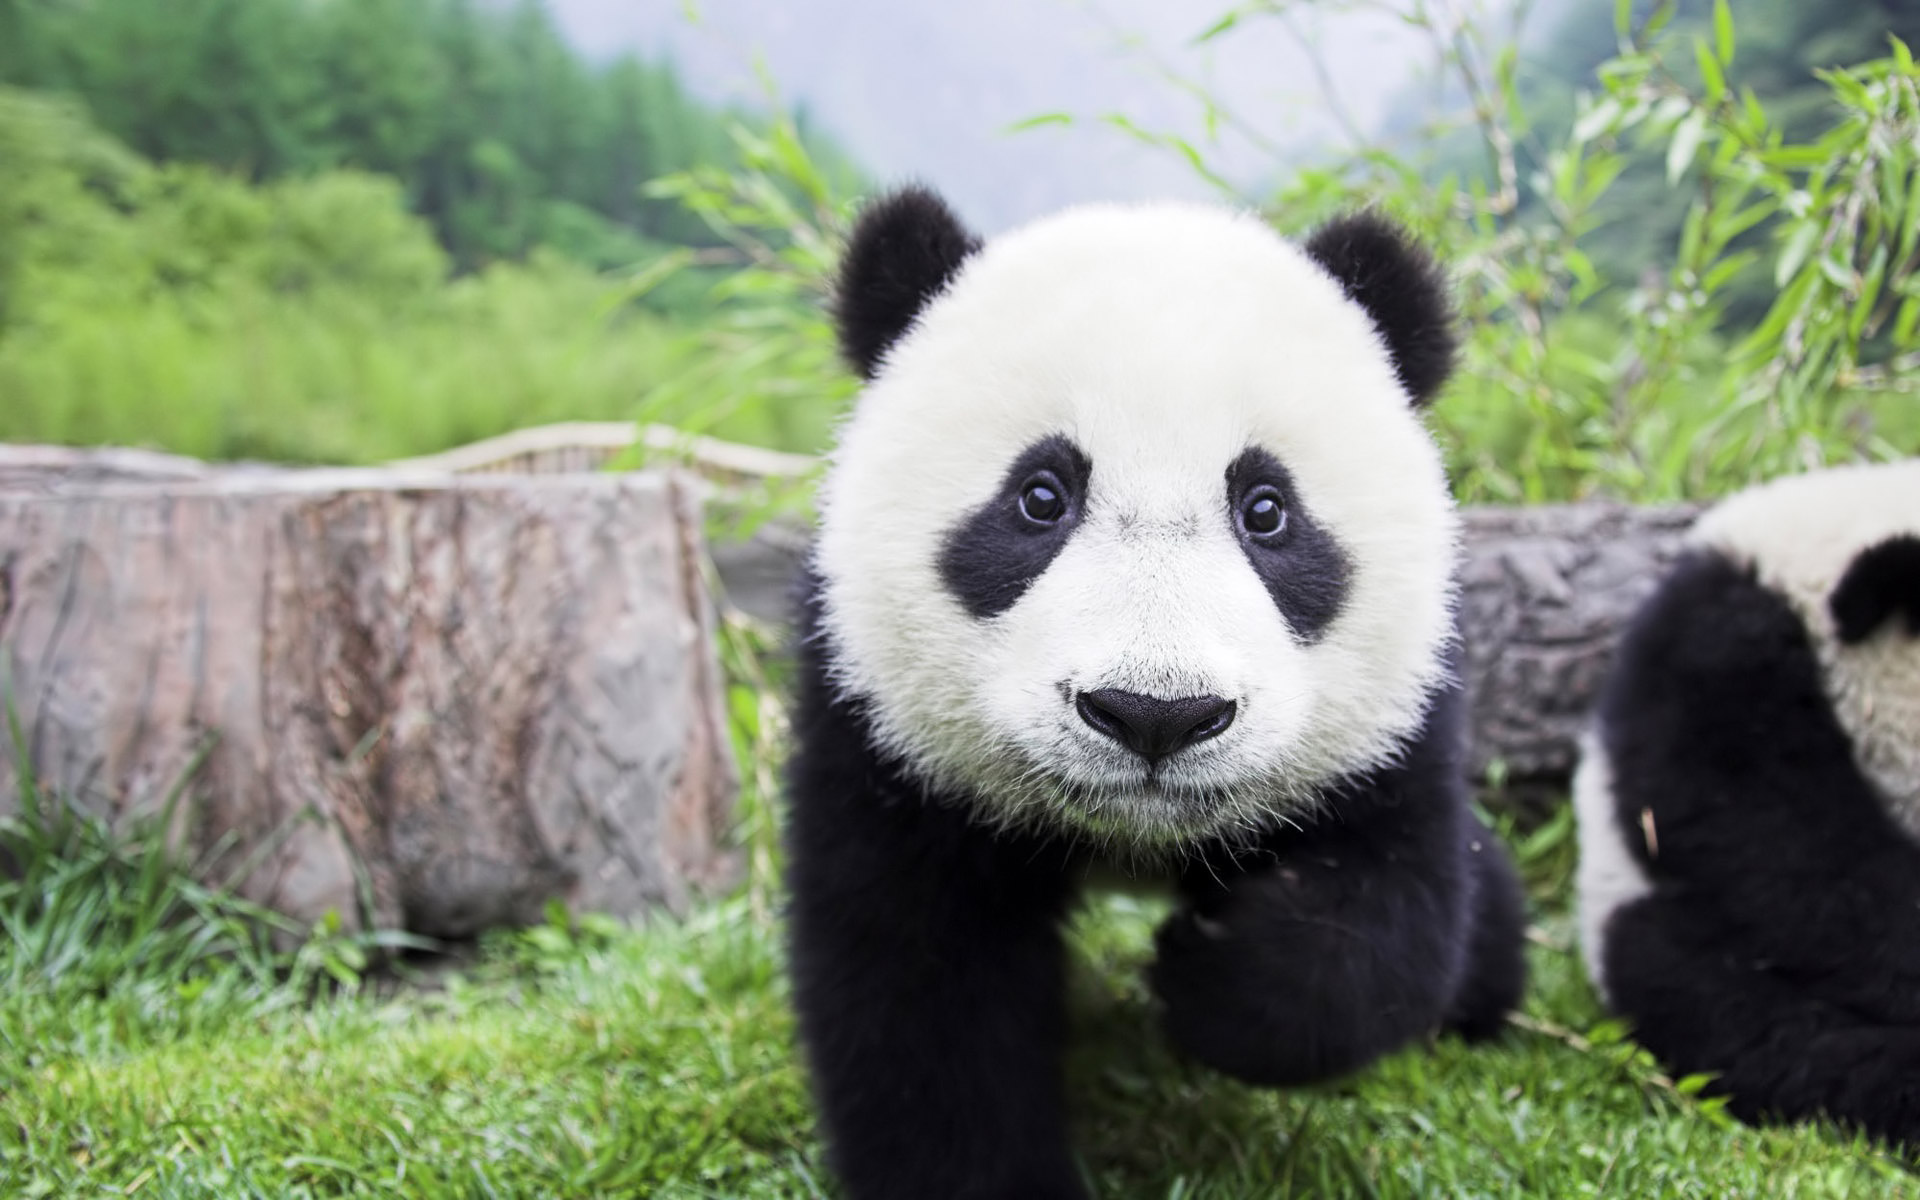 HD Quality Images of Pandas » #39787686 1920x1200 px